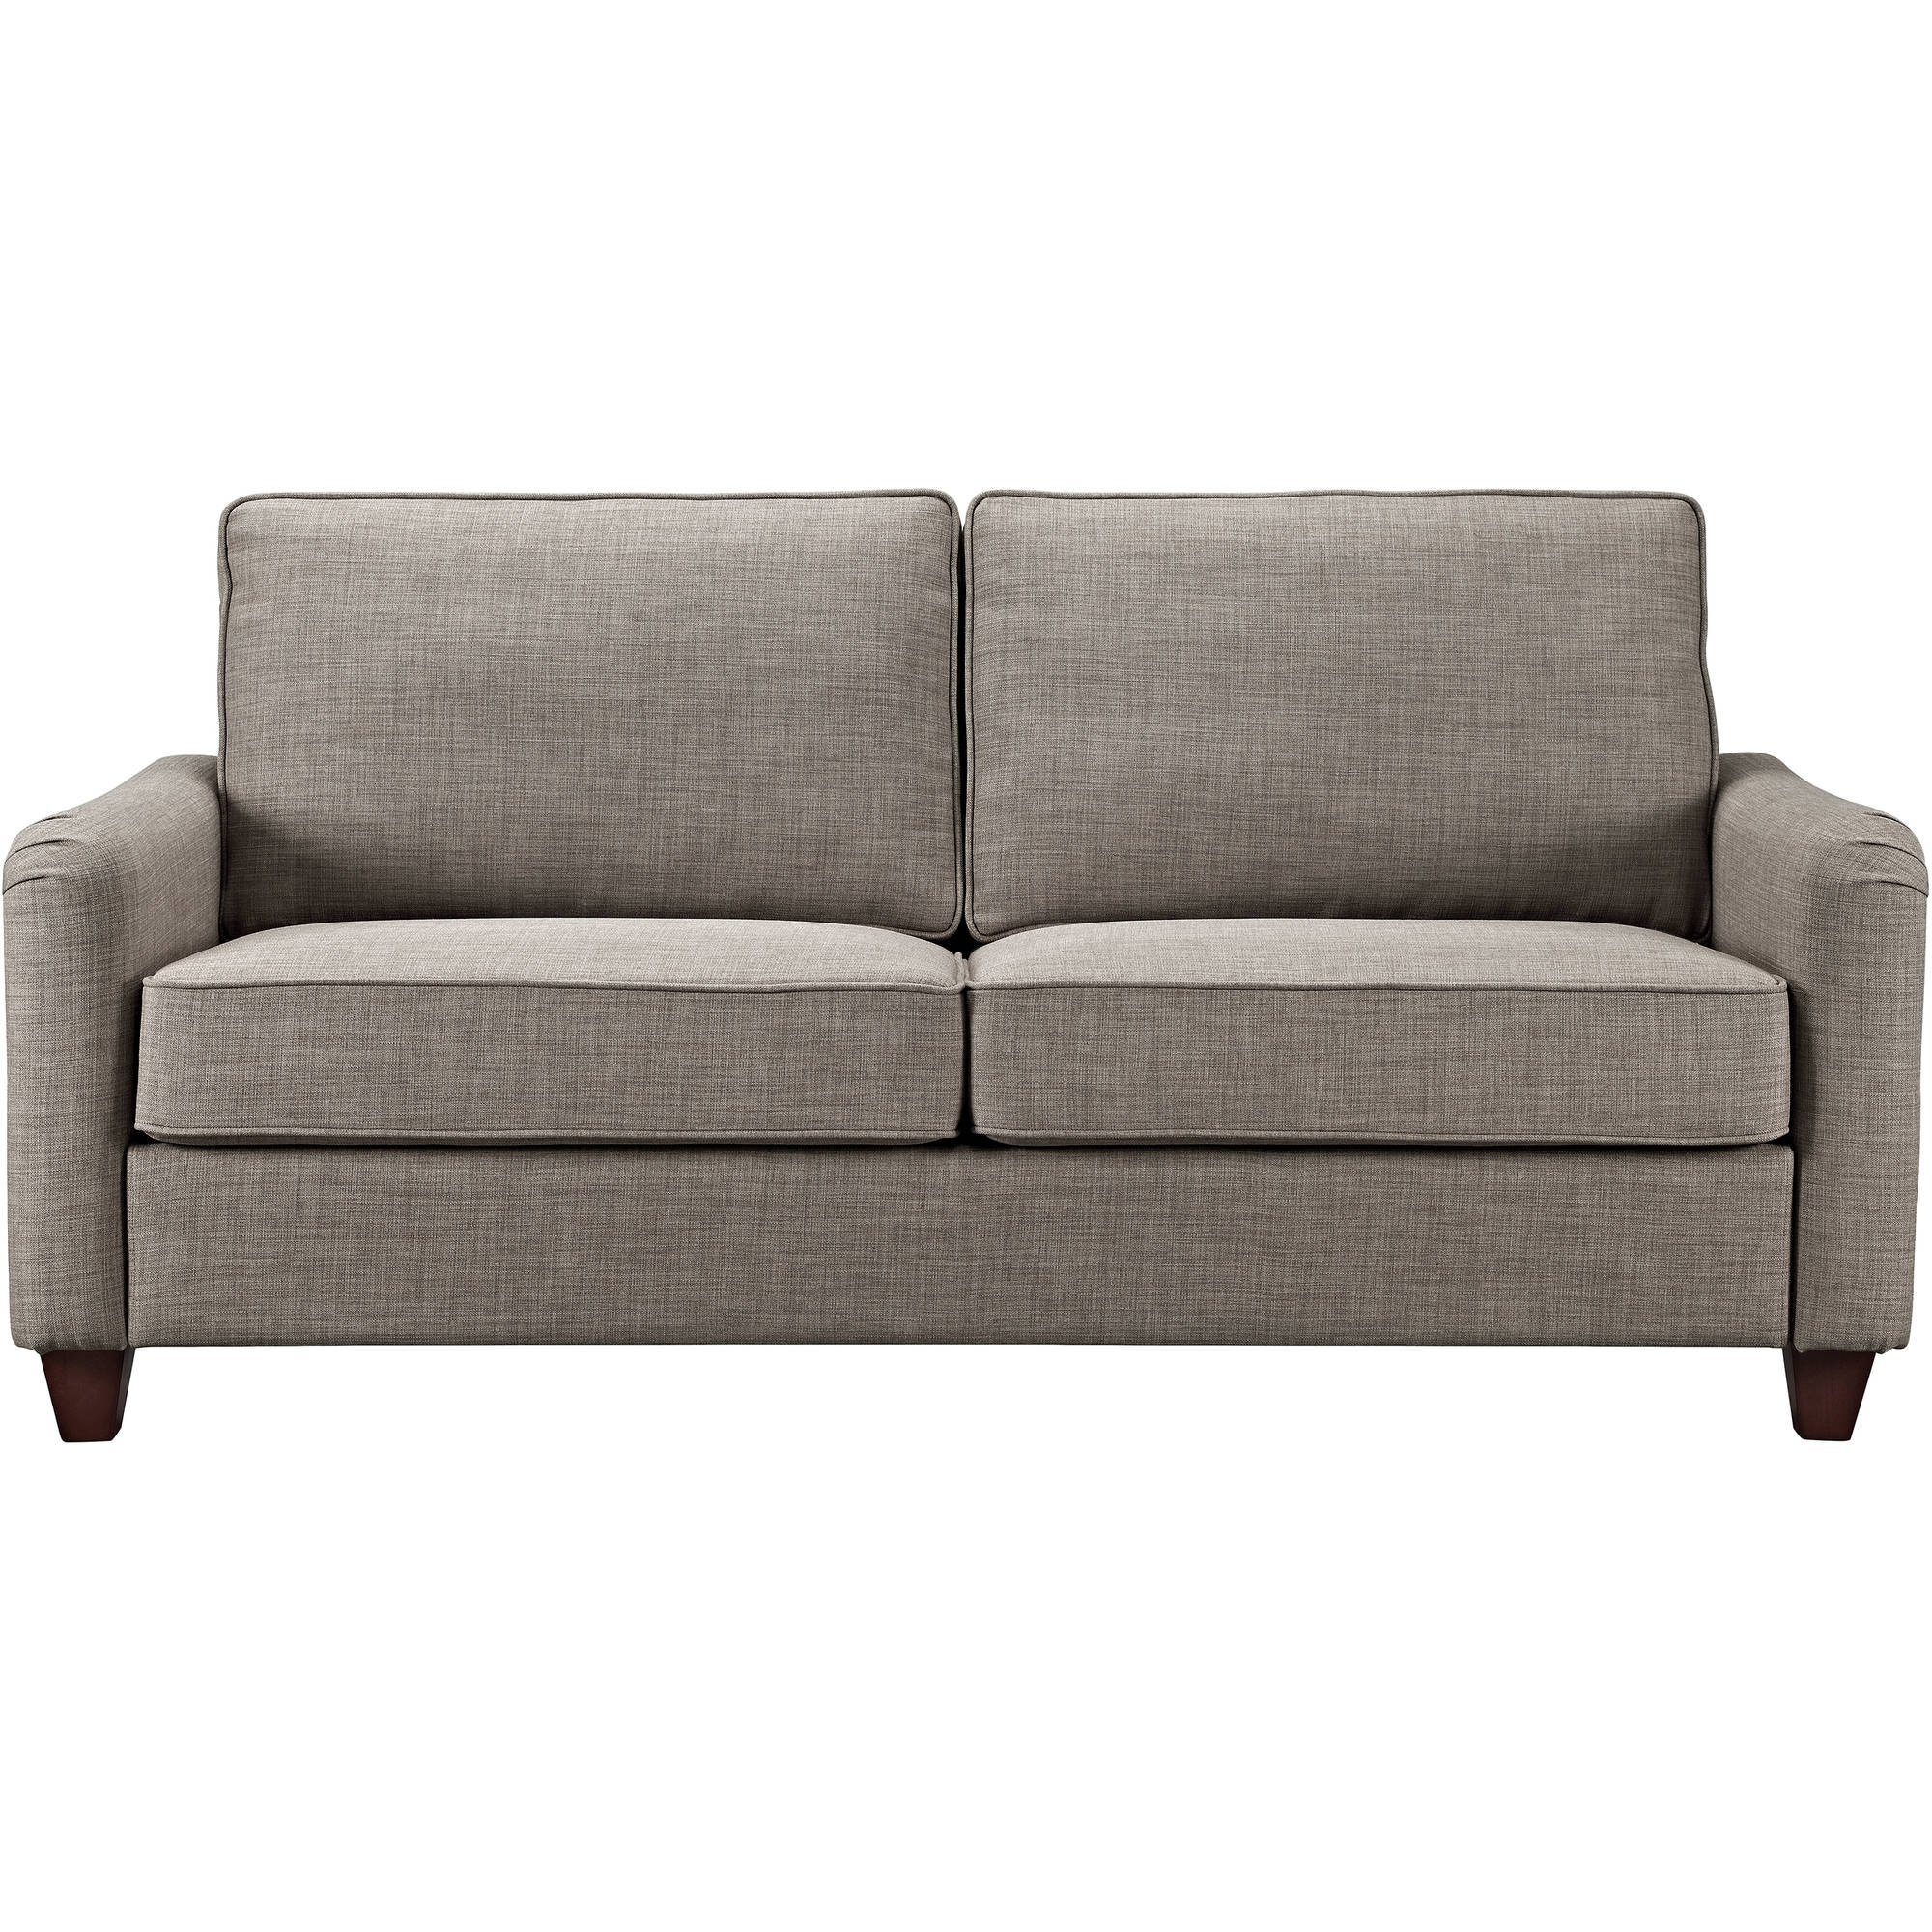 Most Recently Released Sectional Sofas Under 200 In Sofas & Couches – Walmart (View 12 of 20)